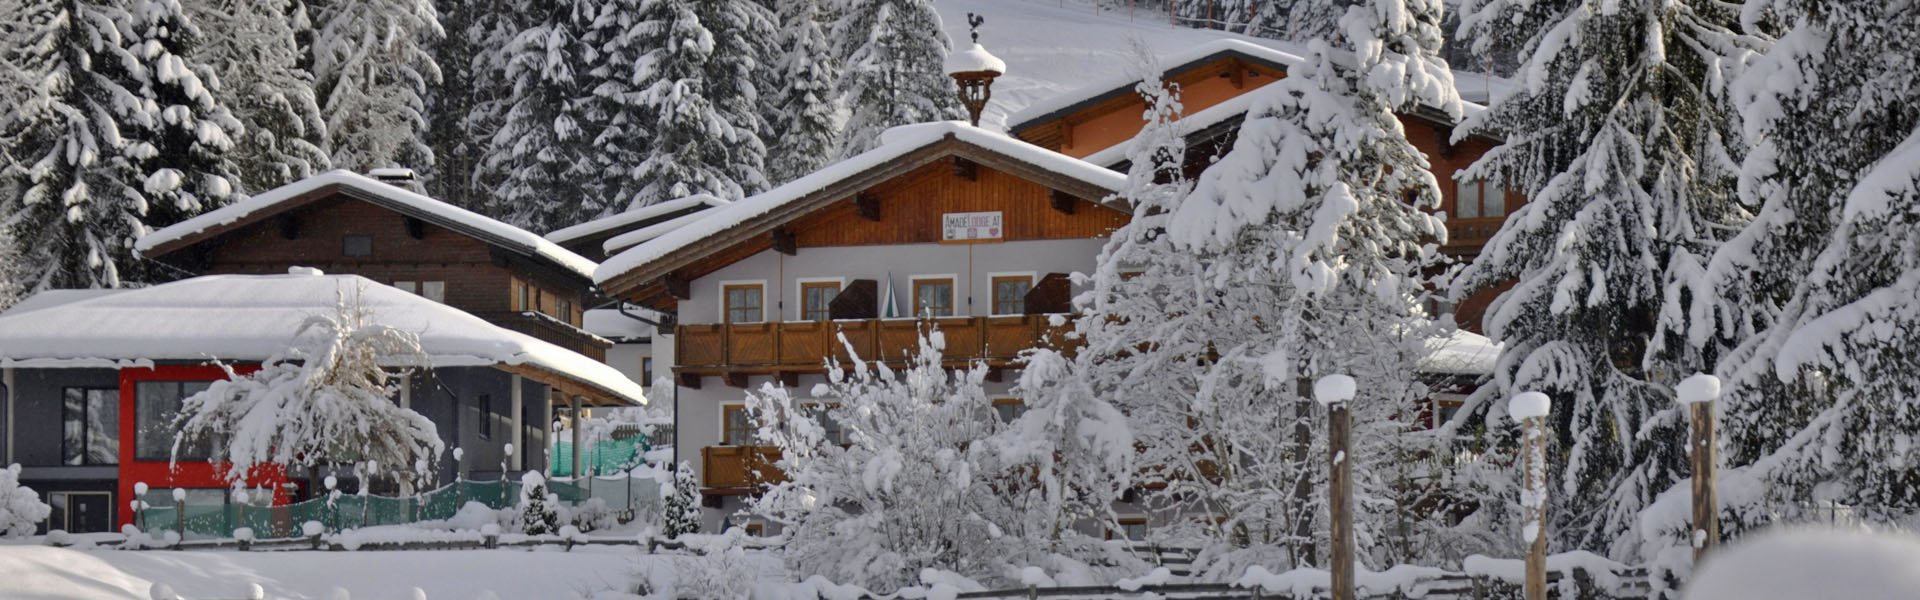 AmadéLodge Winter